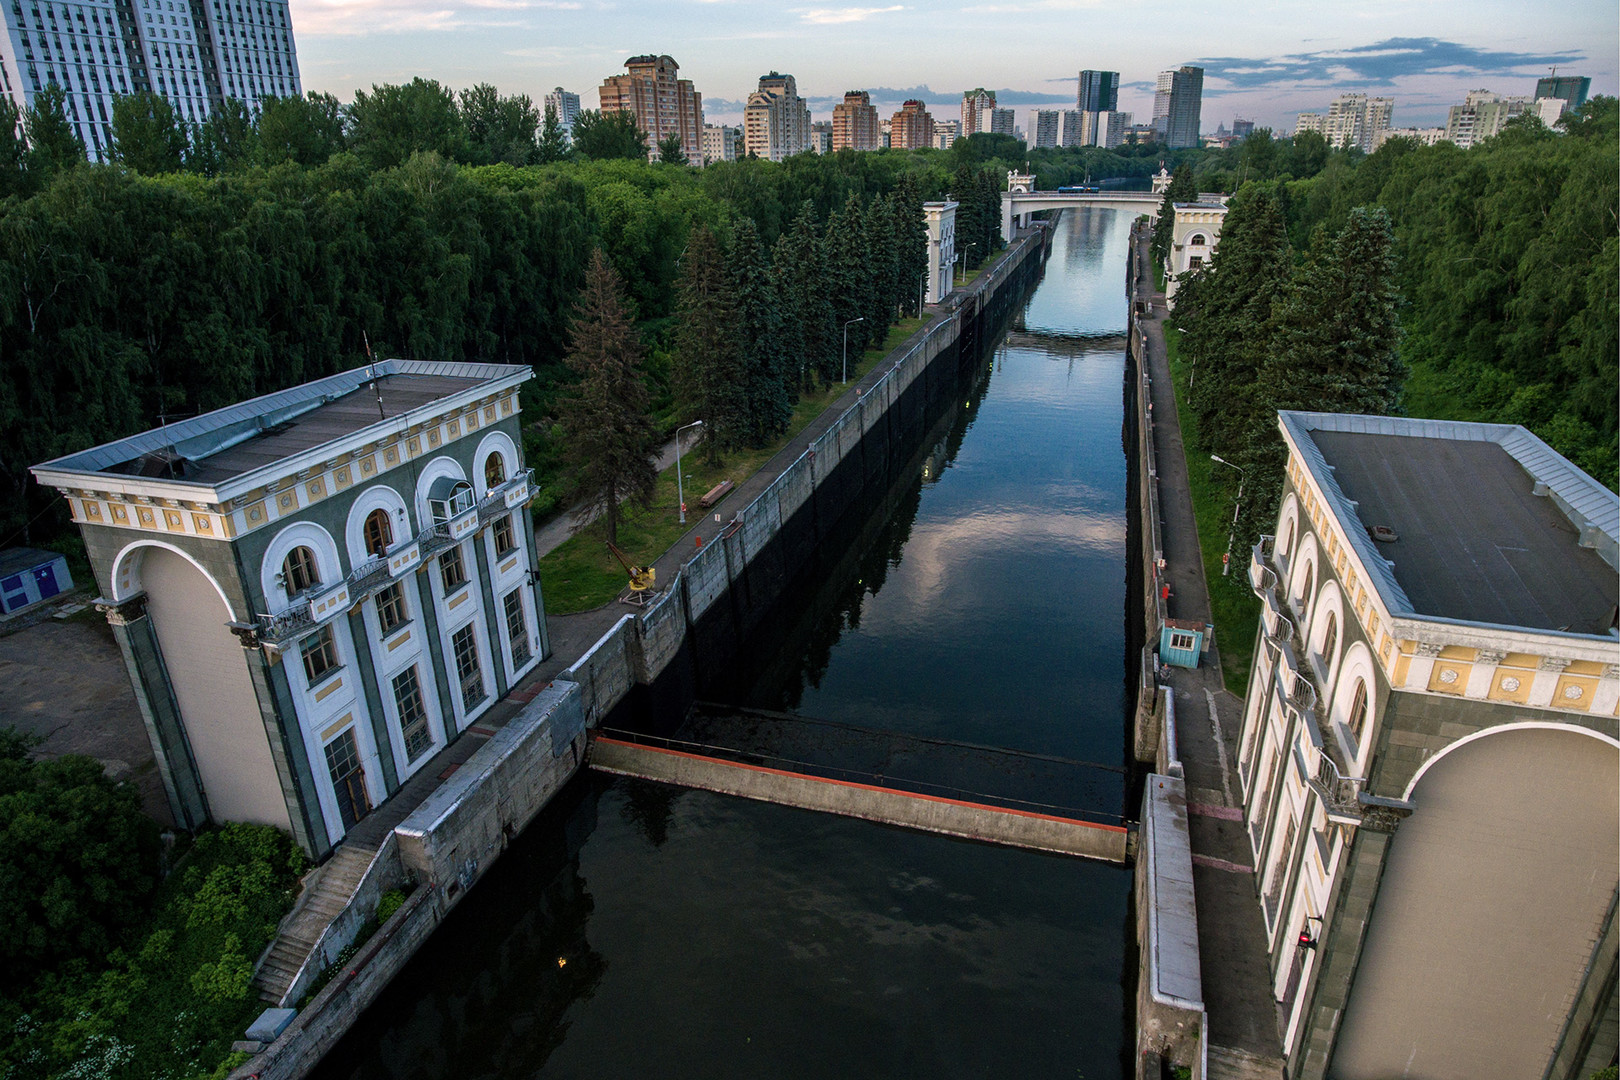 A view of a Moscow Canal lock